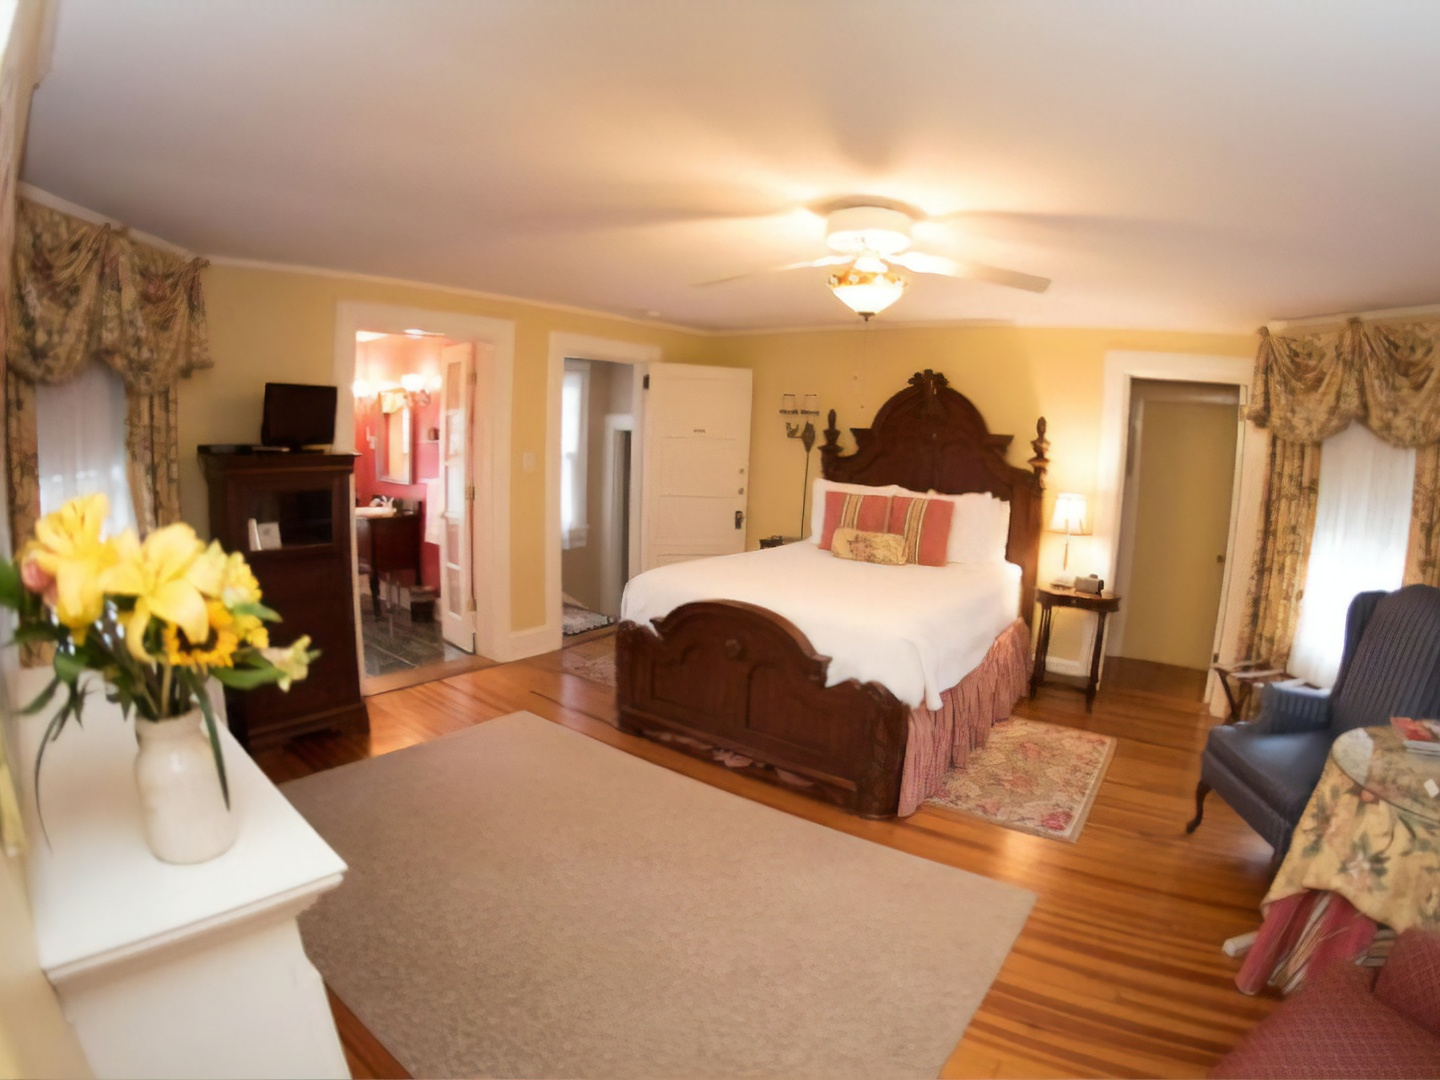 A living room filled with furniture and a fireplace at Pinecrest Bed & Breakfast.